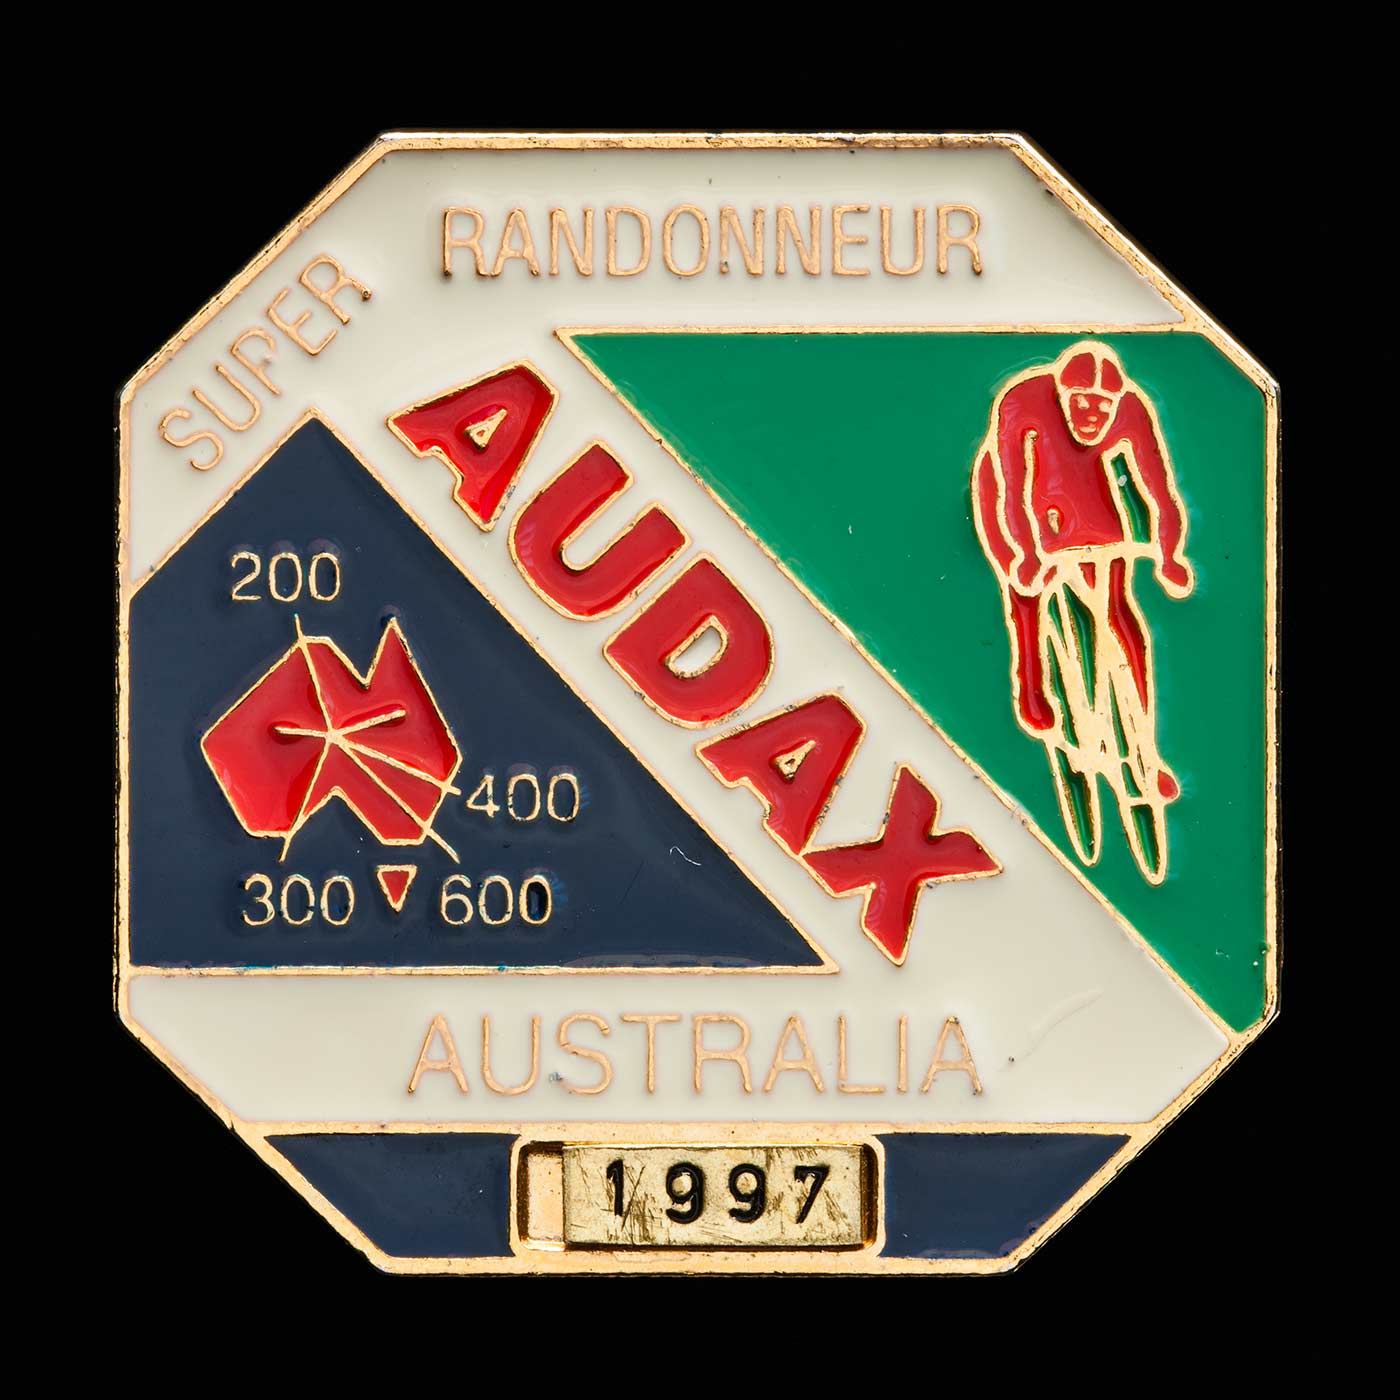 Red, green, white and blue medallion with an image of a cyclist at right and map of Australia at left. - click to view larger image